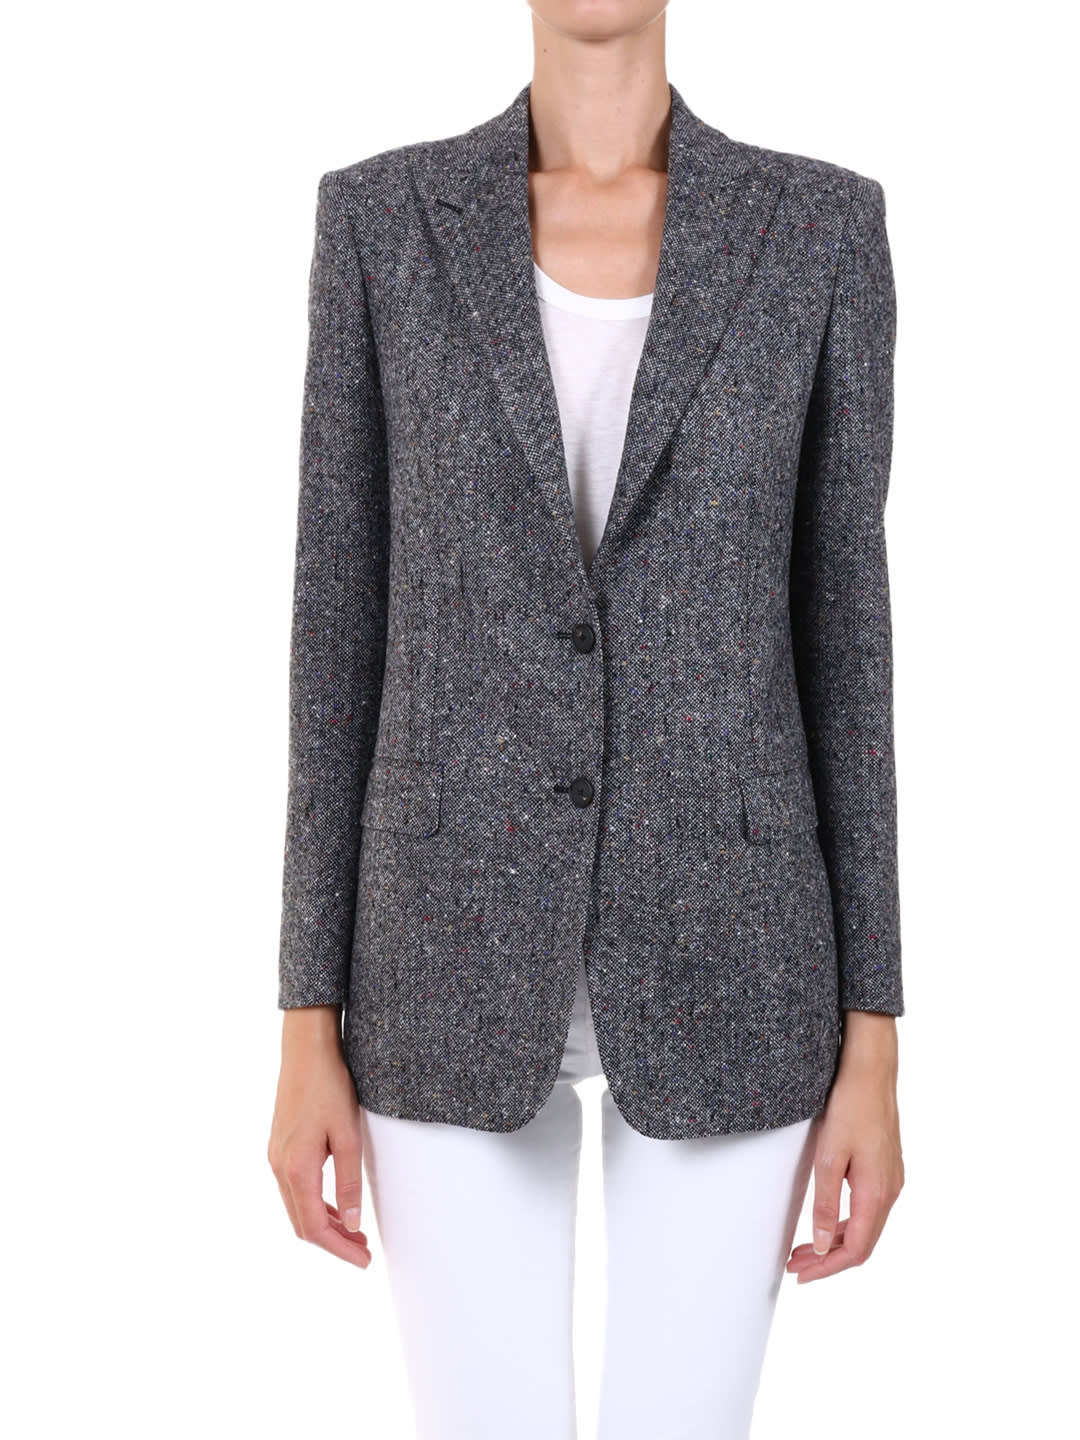 Tagliatore WOOL JACKET GRAY